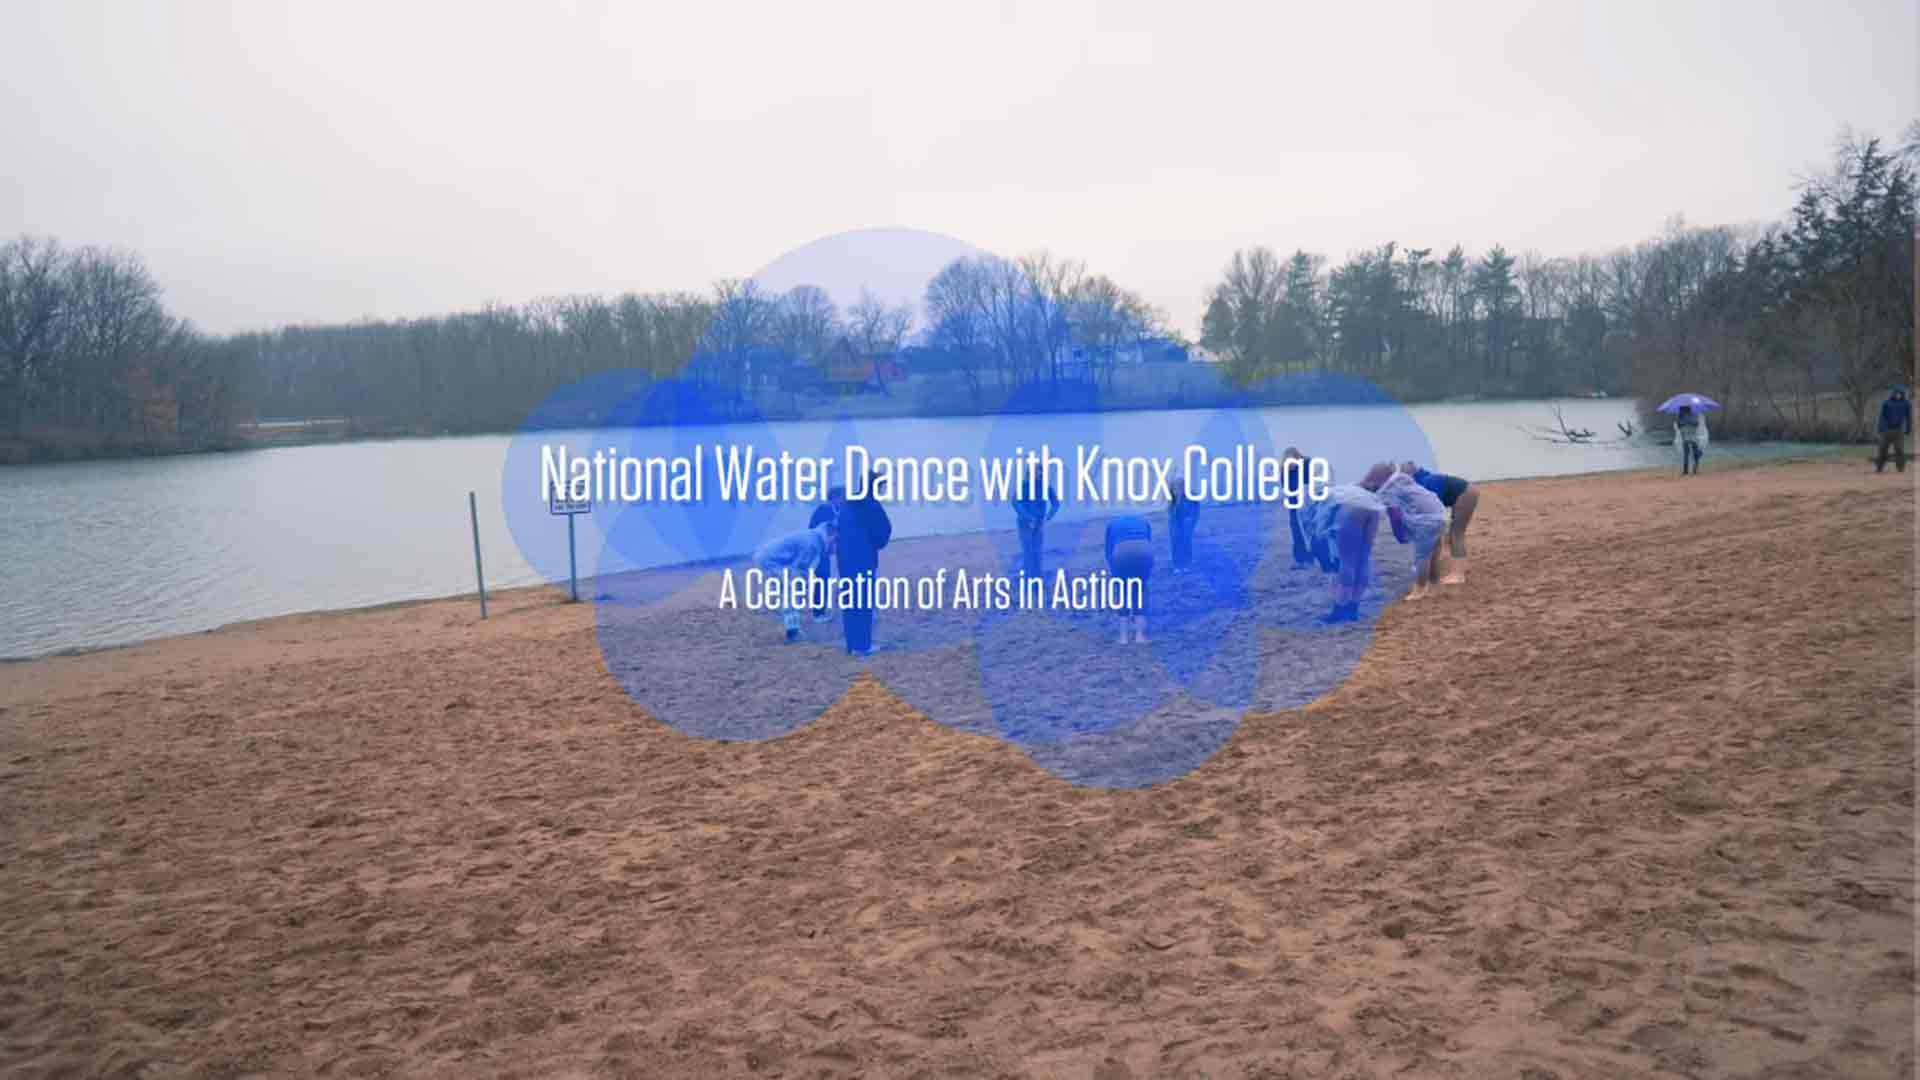 Image for National Water Dance with Knox College